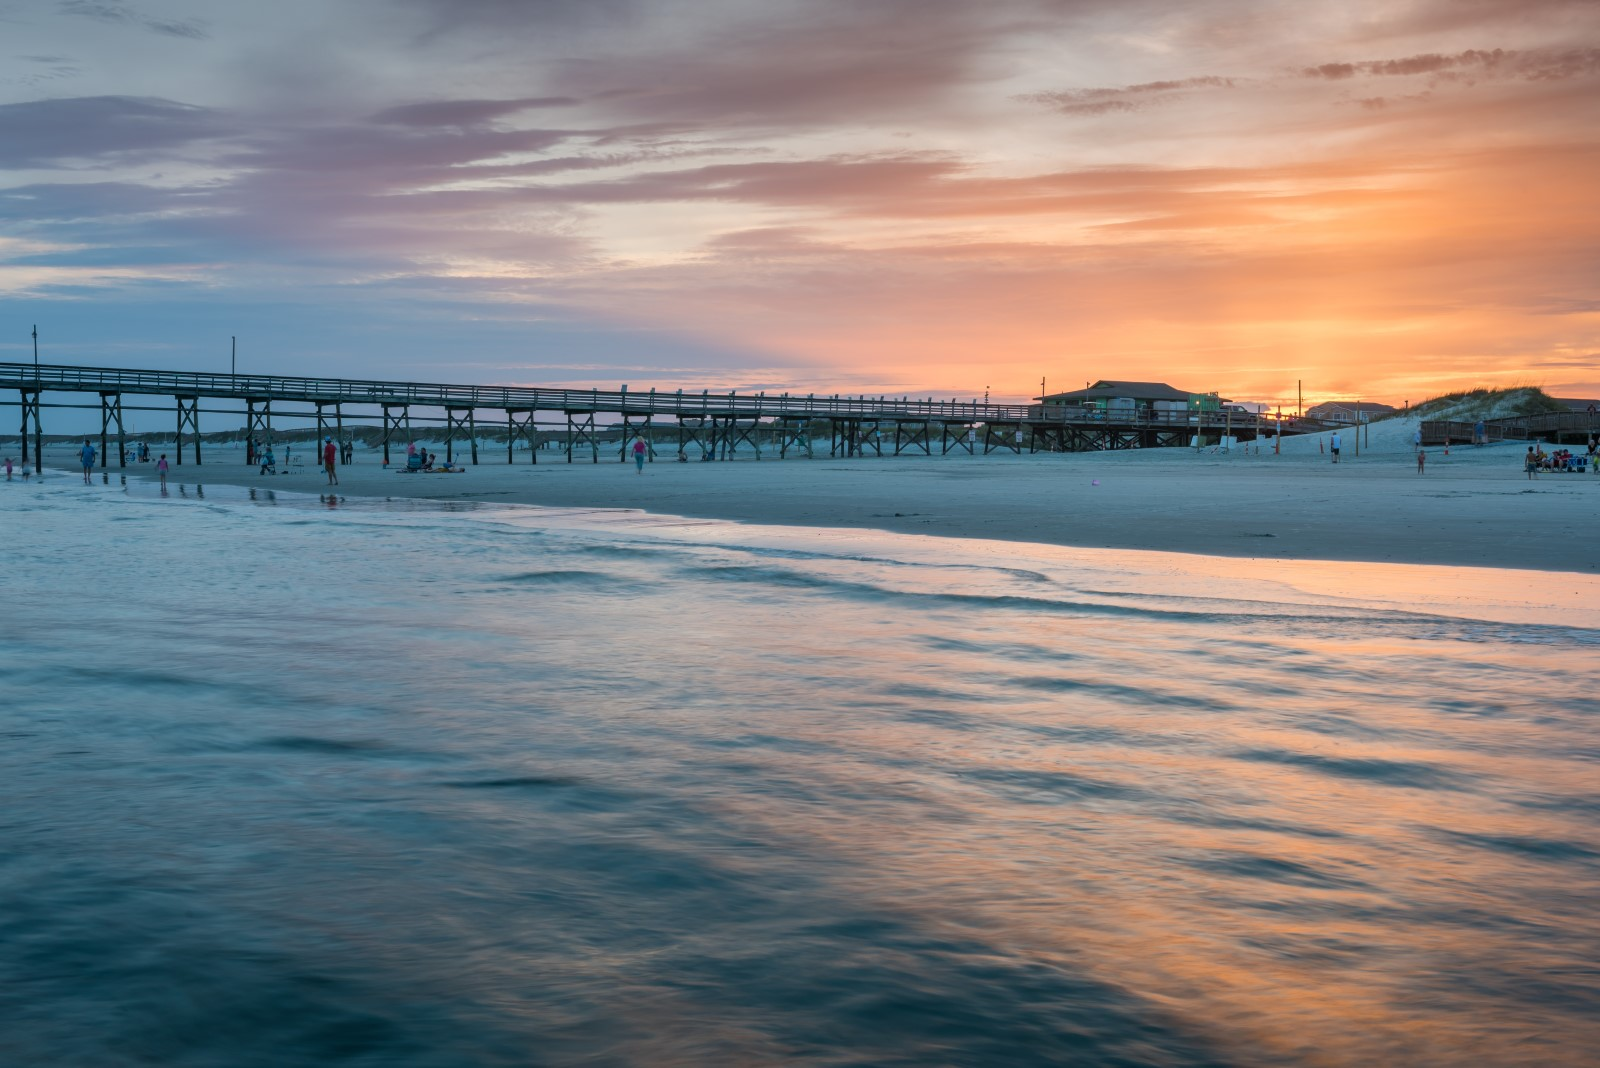 Sunset at the fishing pier at Sunset Beach.